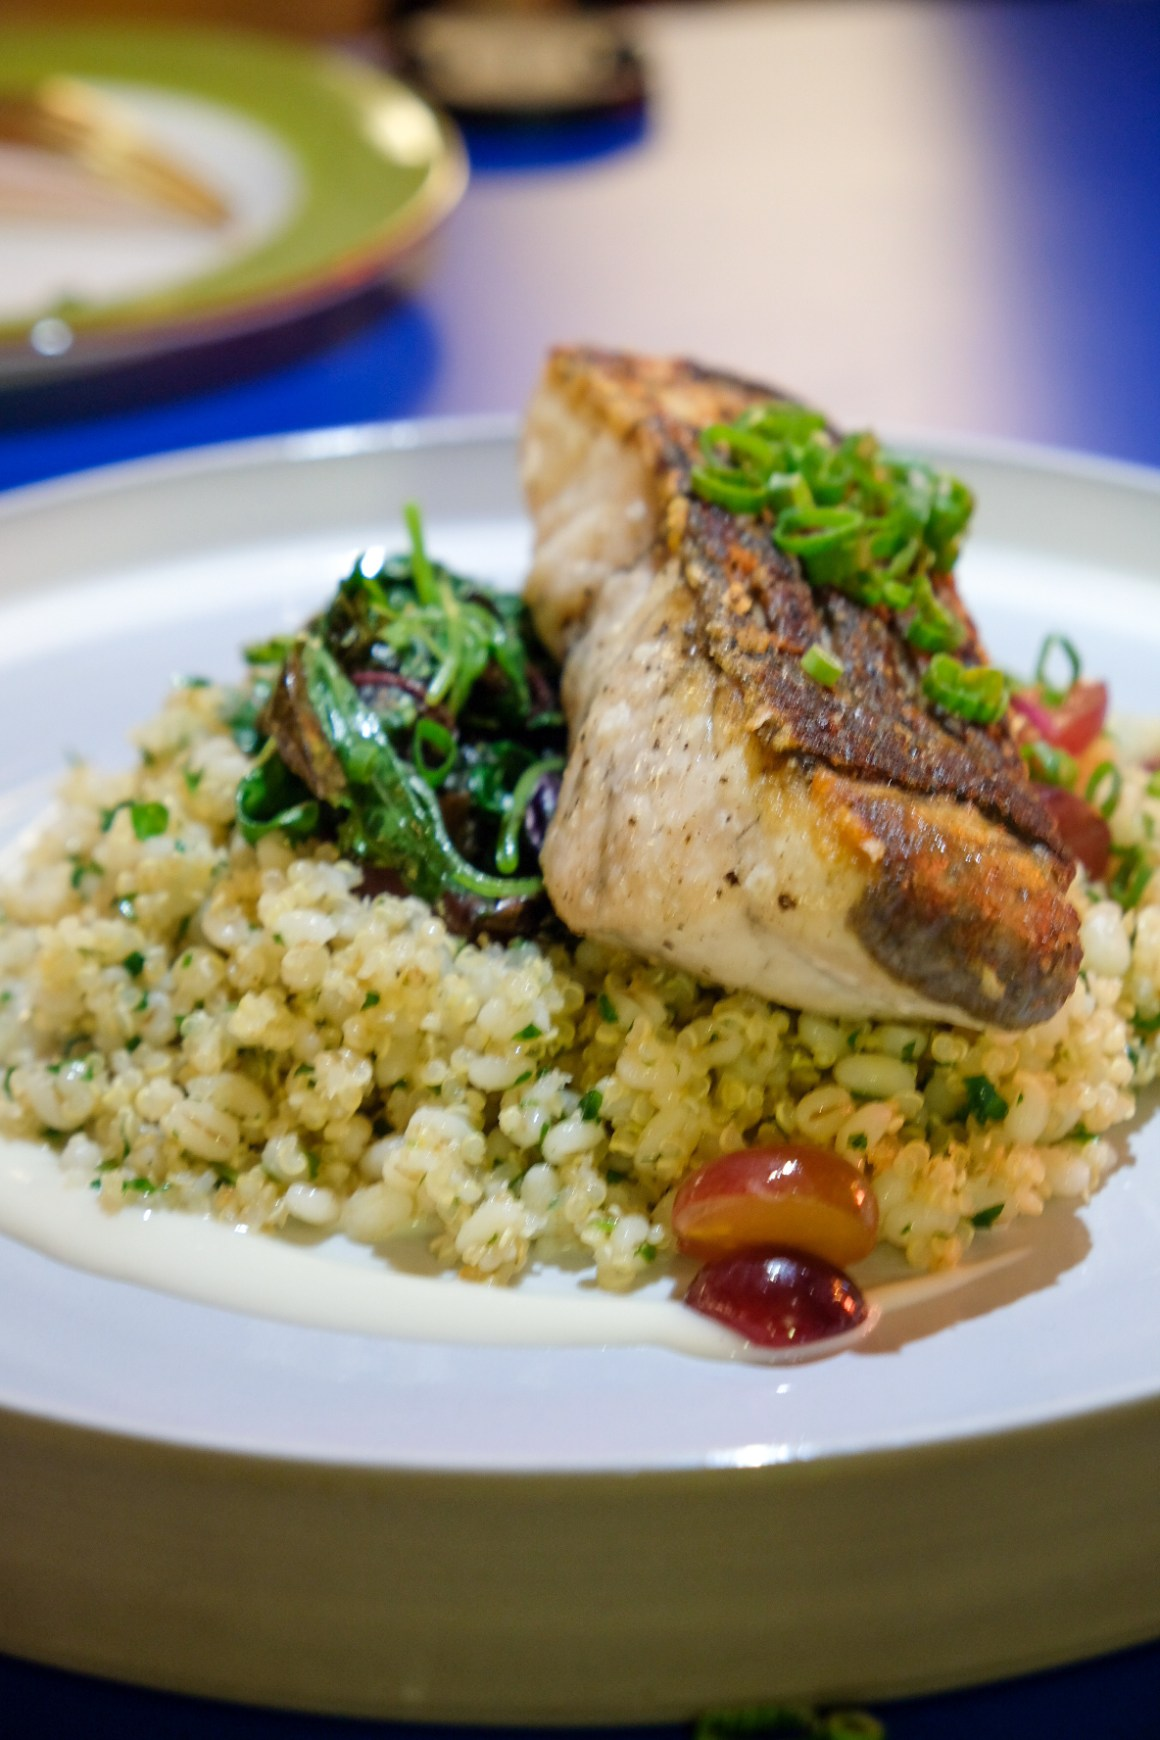 The Garden Club Serving Healthy Food At Downtown Gallery - Grilled Barramundi